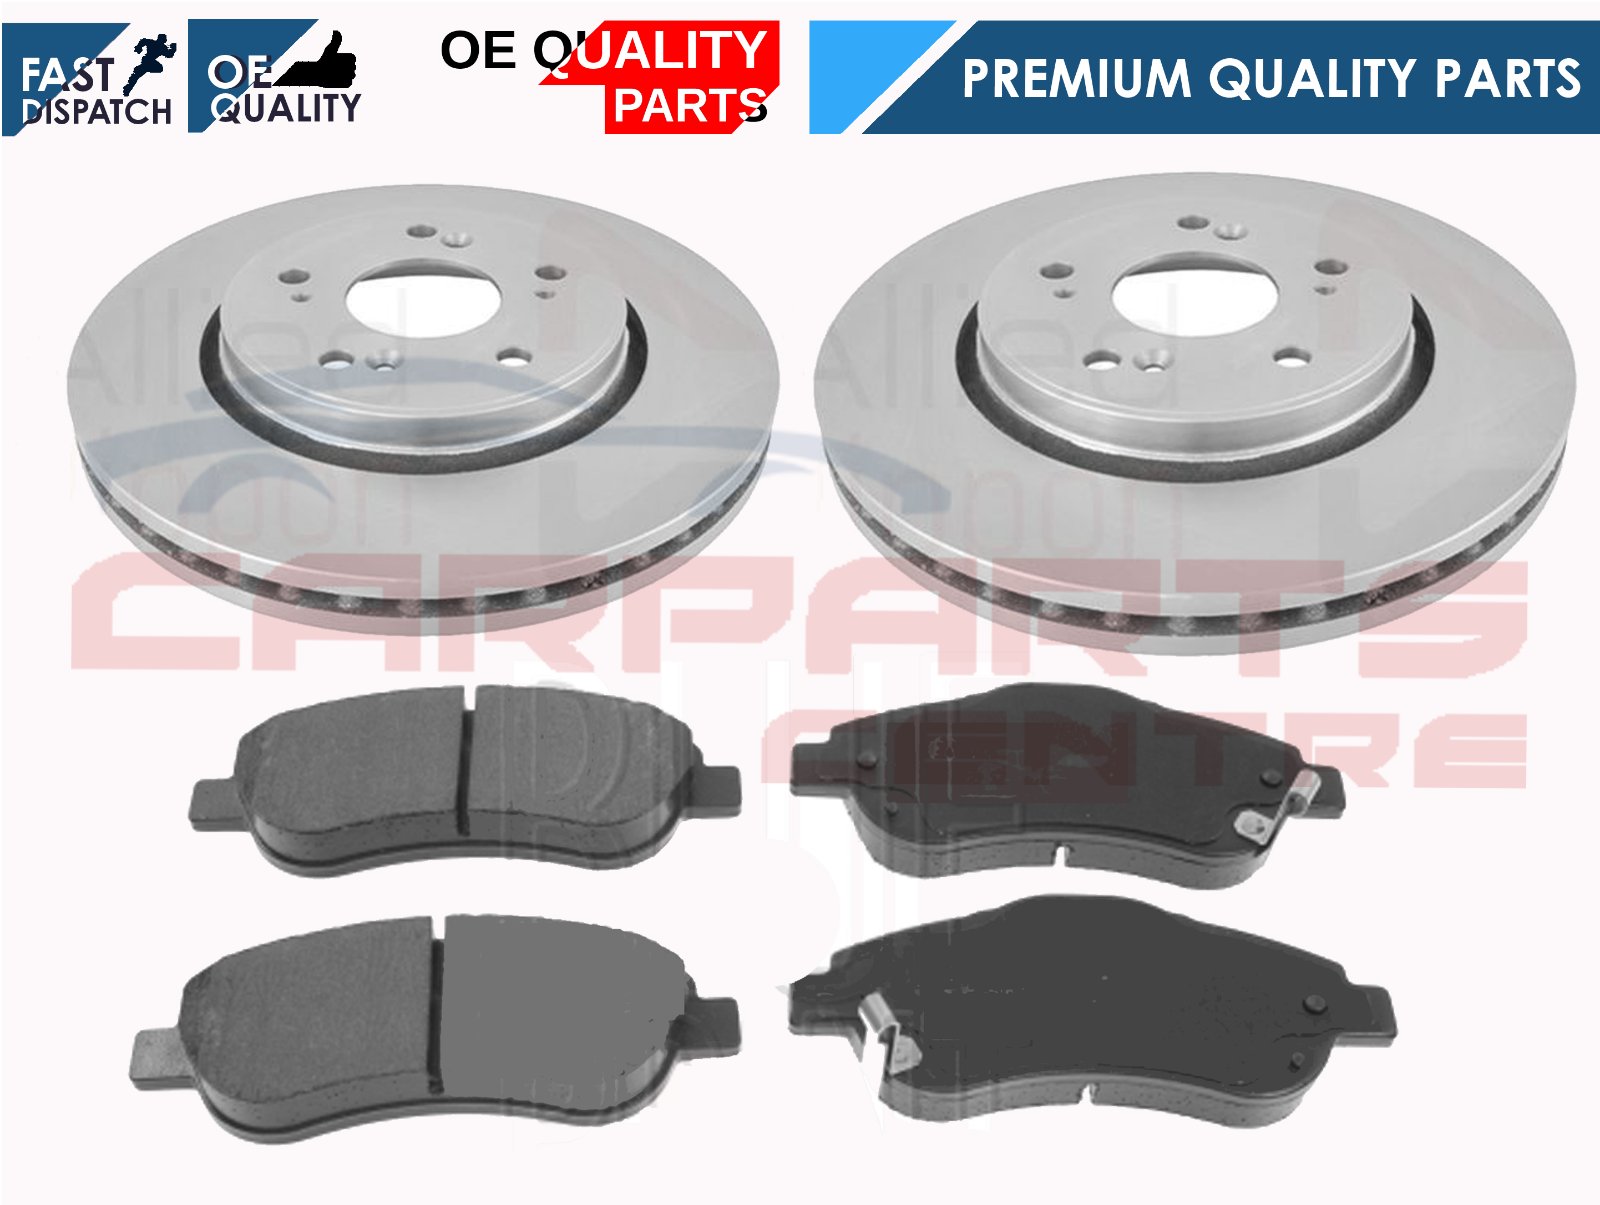 Rear Brake Pads For Honda CR-V 2.0i 2.2i-CTDI 4WD